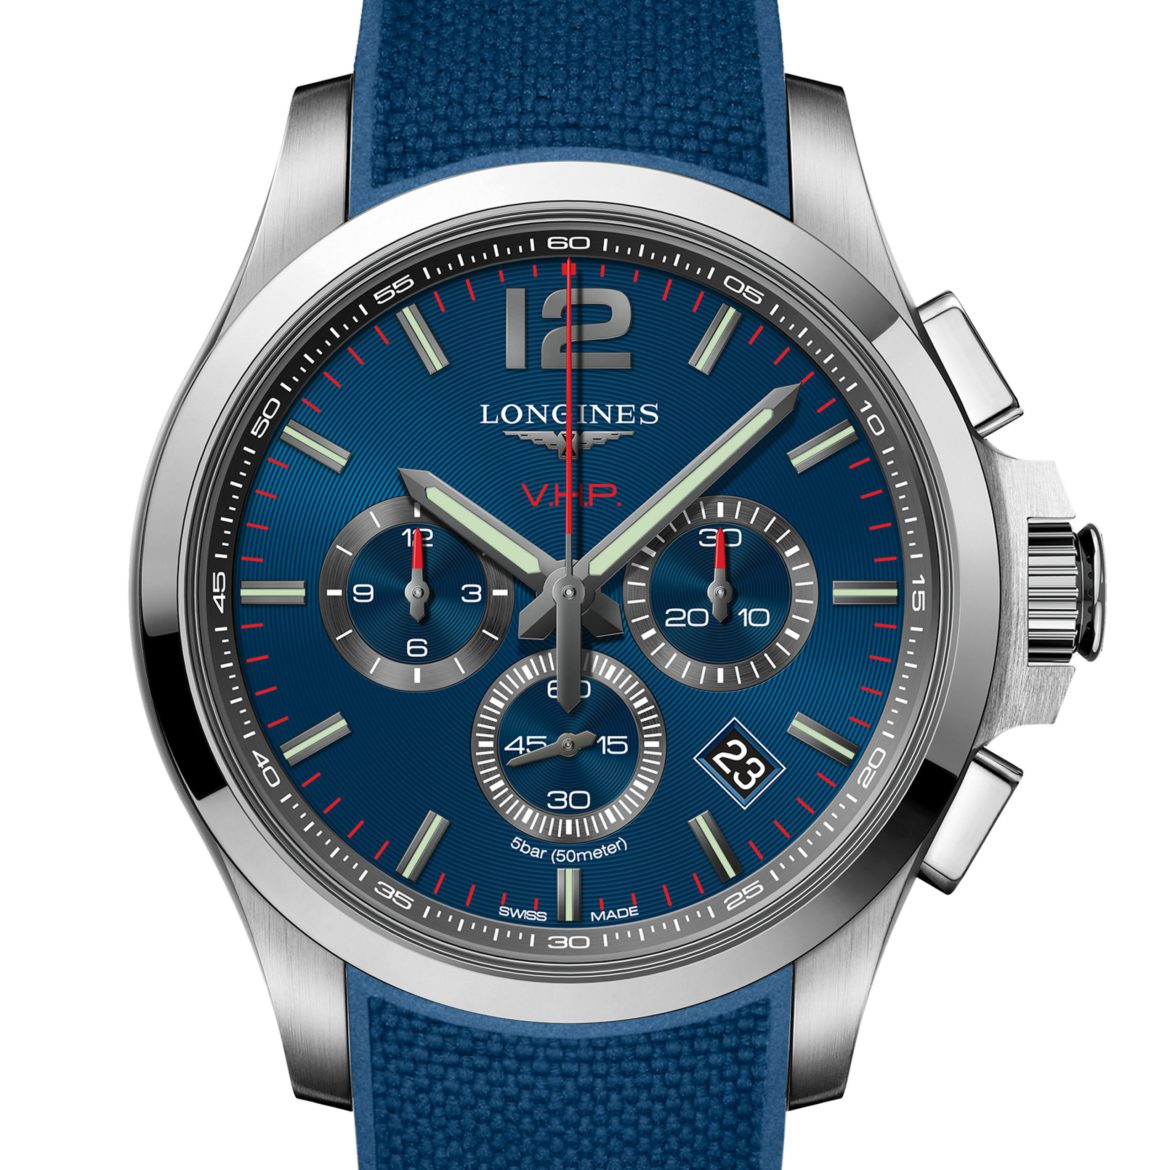 LONGINES</br/>Conquest VHP</br/>L37274969